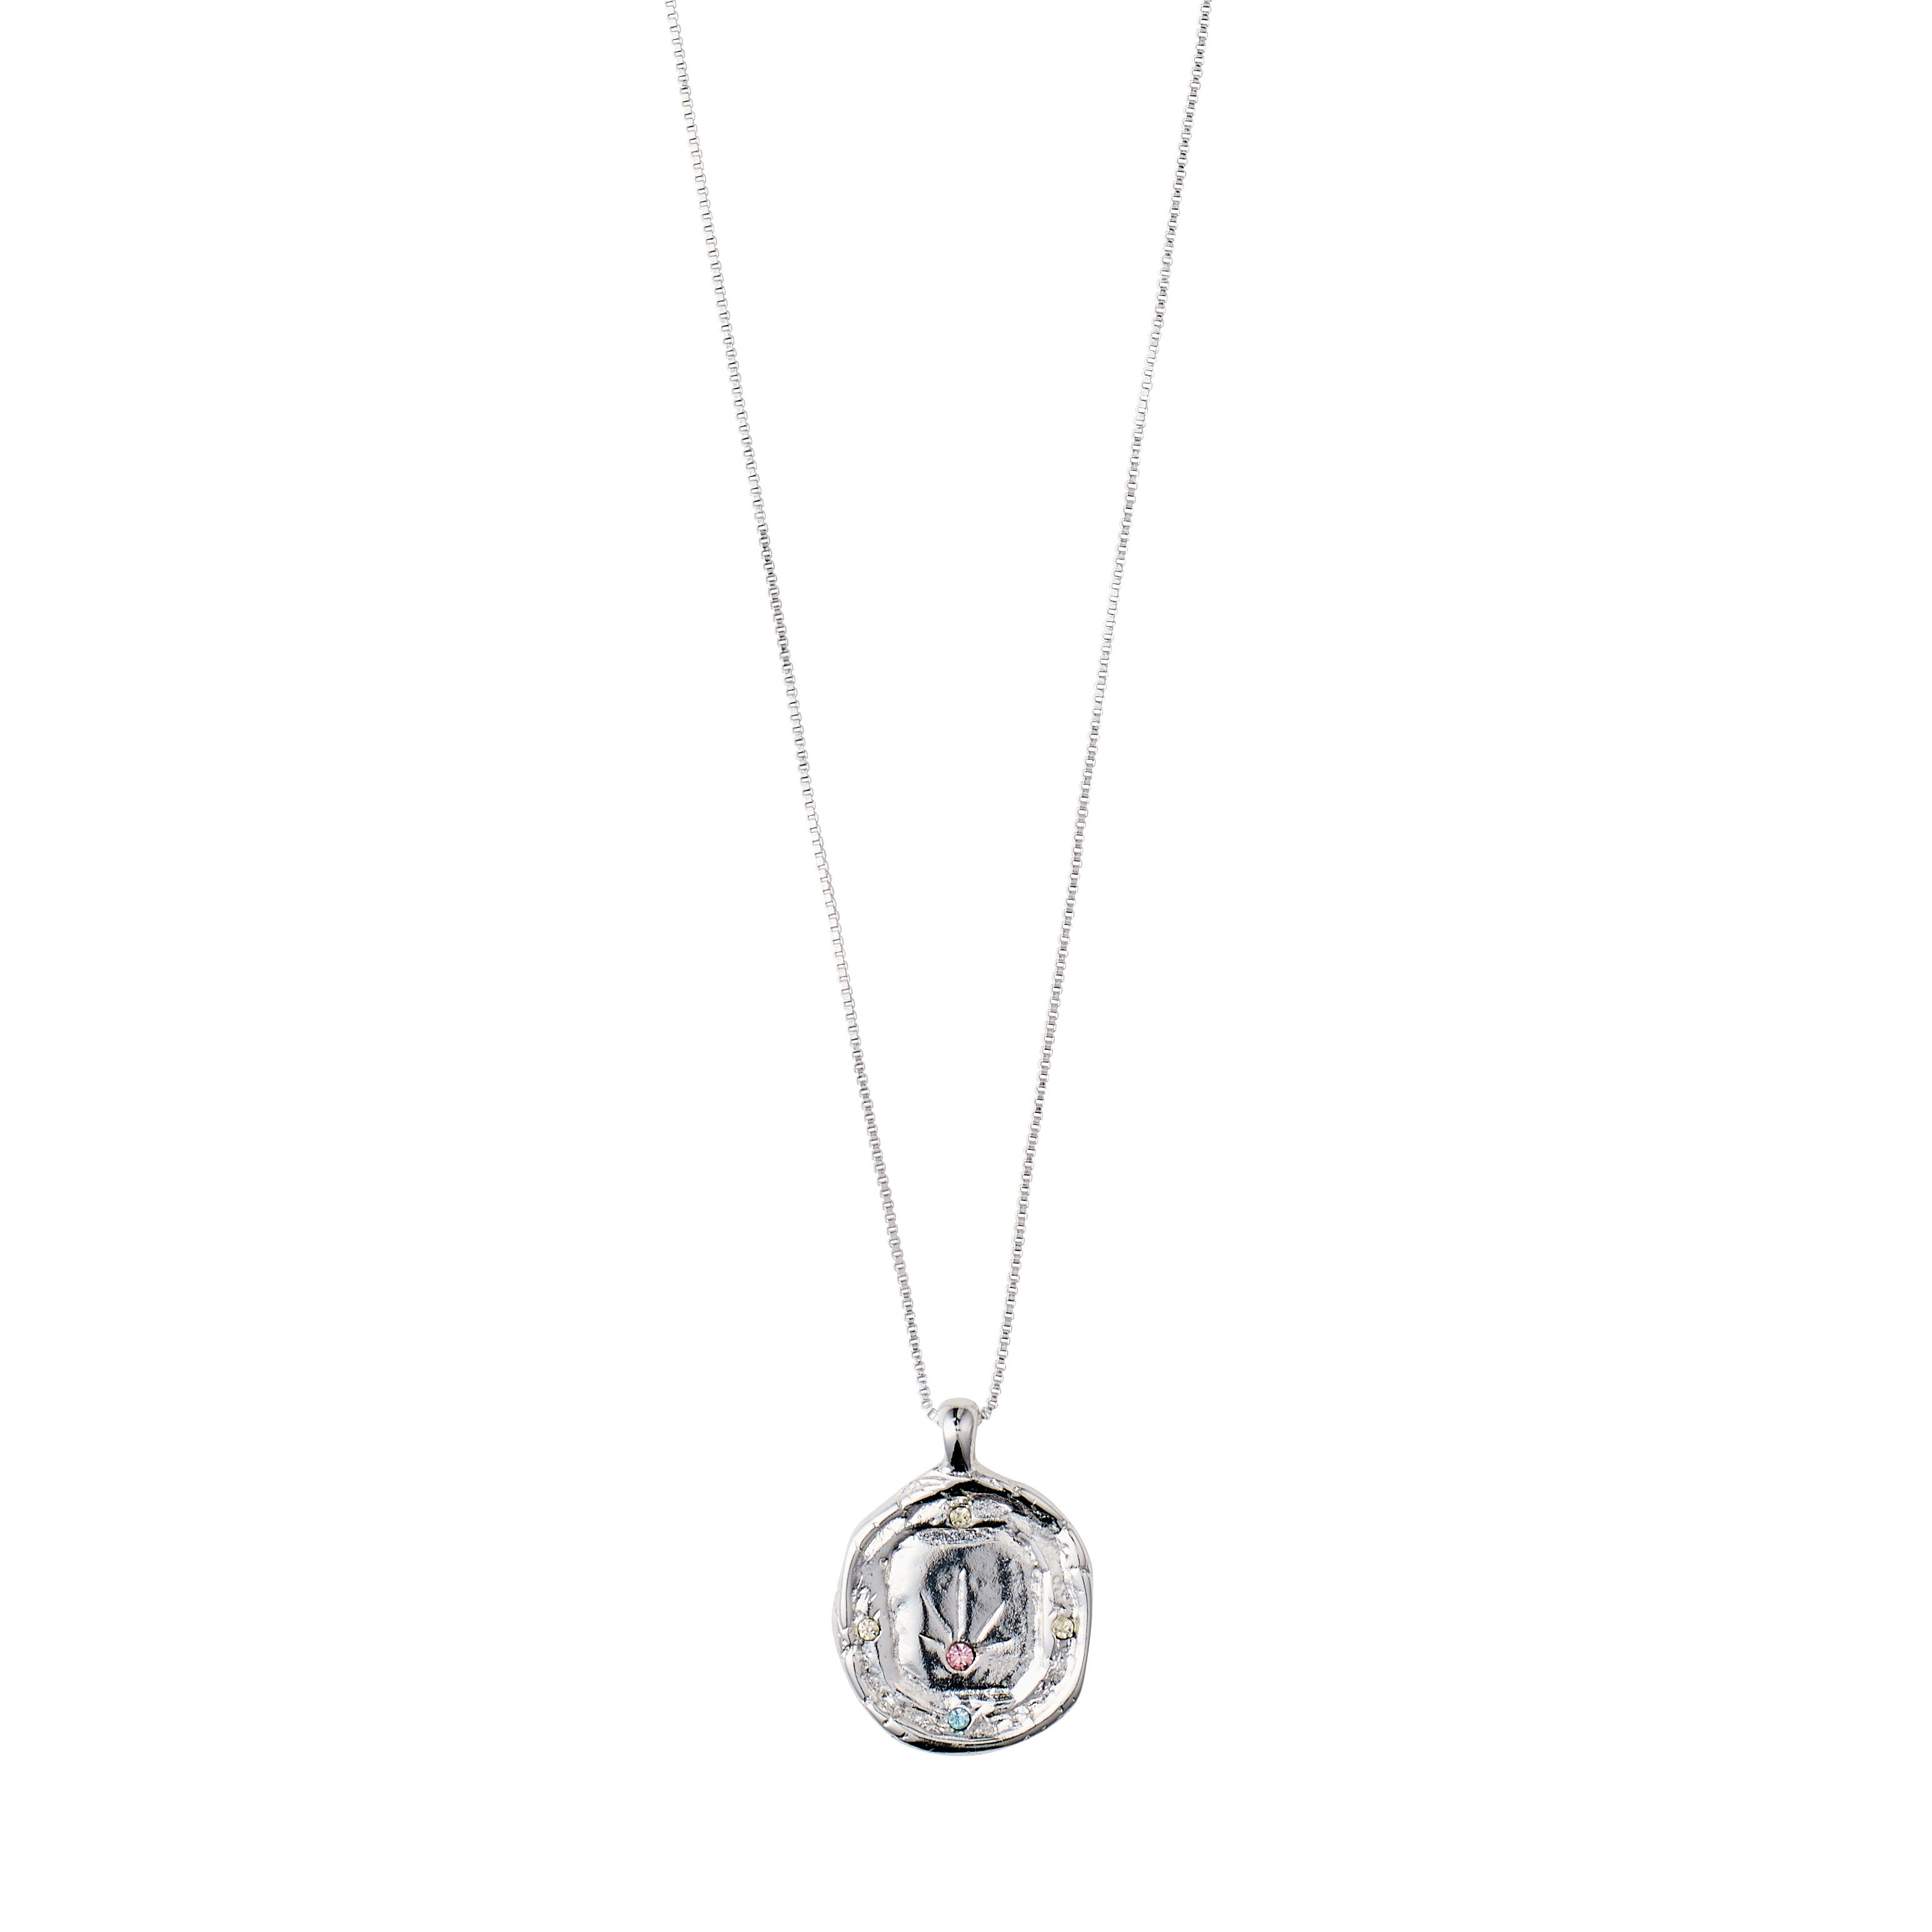 Necklace : Feelings of L.A. : Silver Plated : Multi